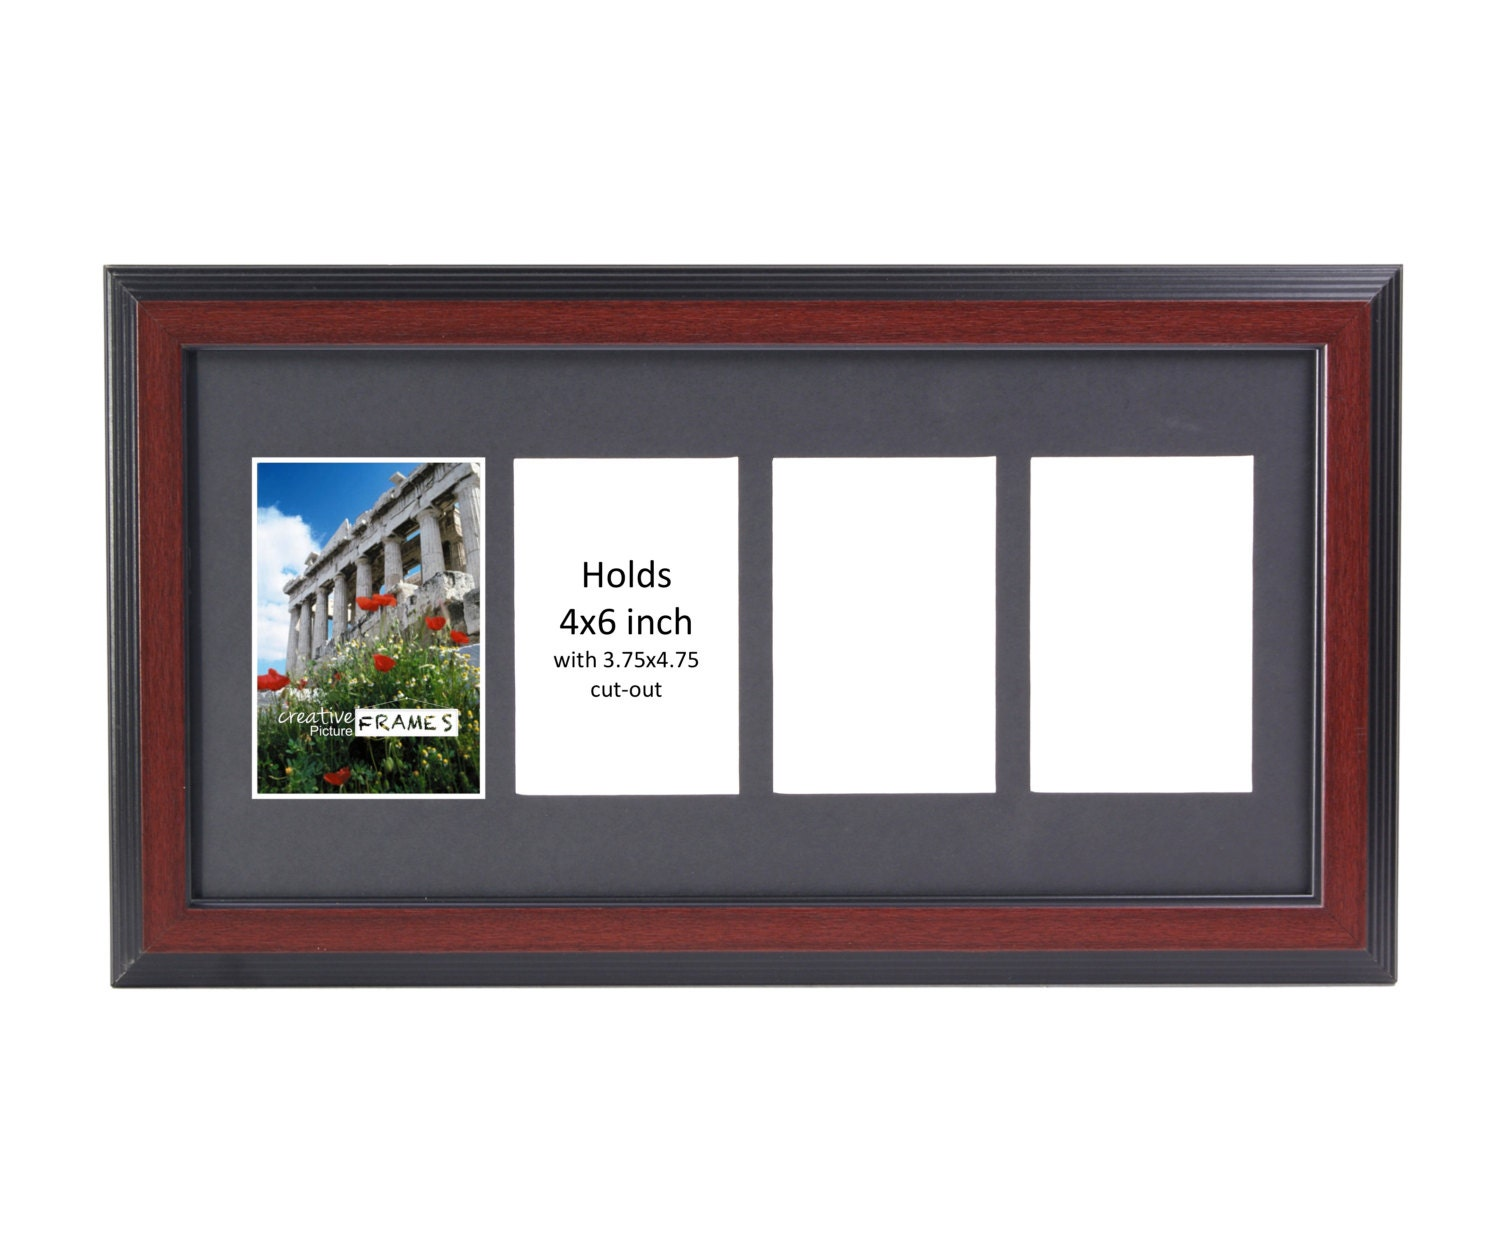 Mahogany Picture Frame 2 3 4 5 6 7 8 9 10 Opening Glass Face